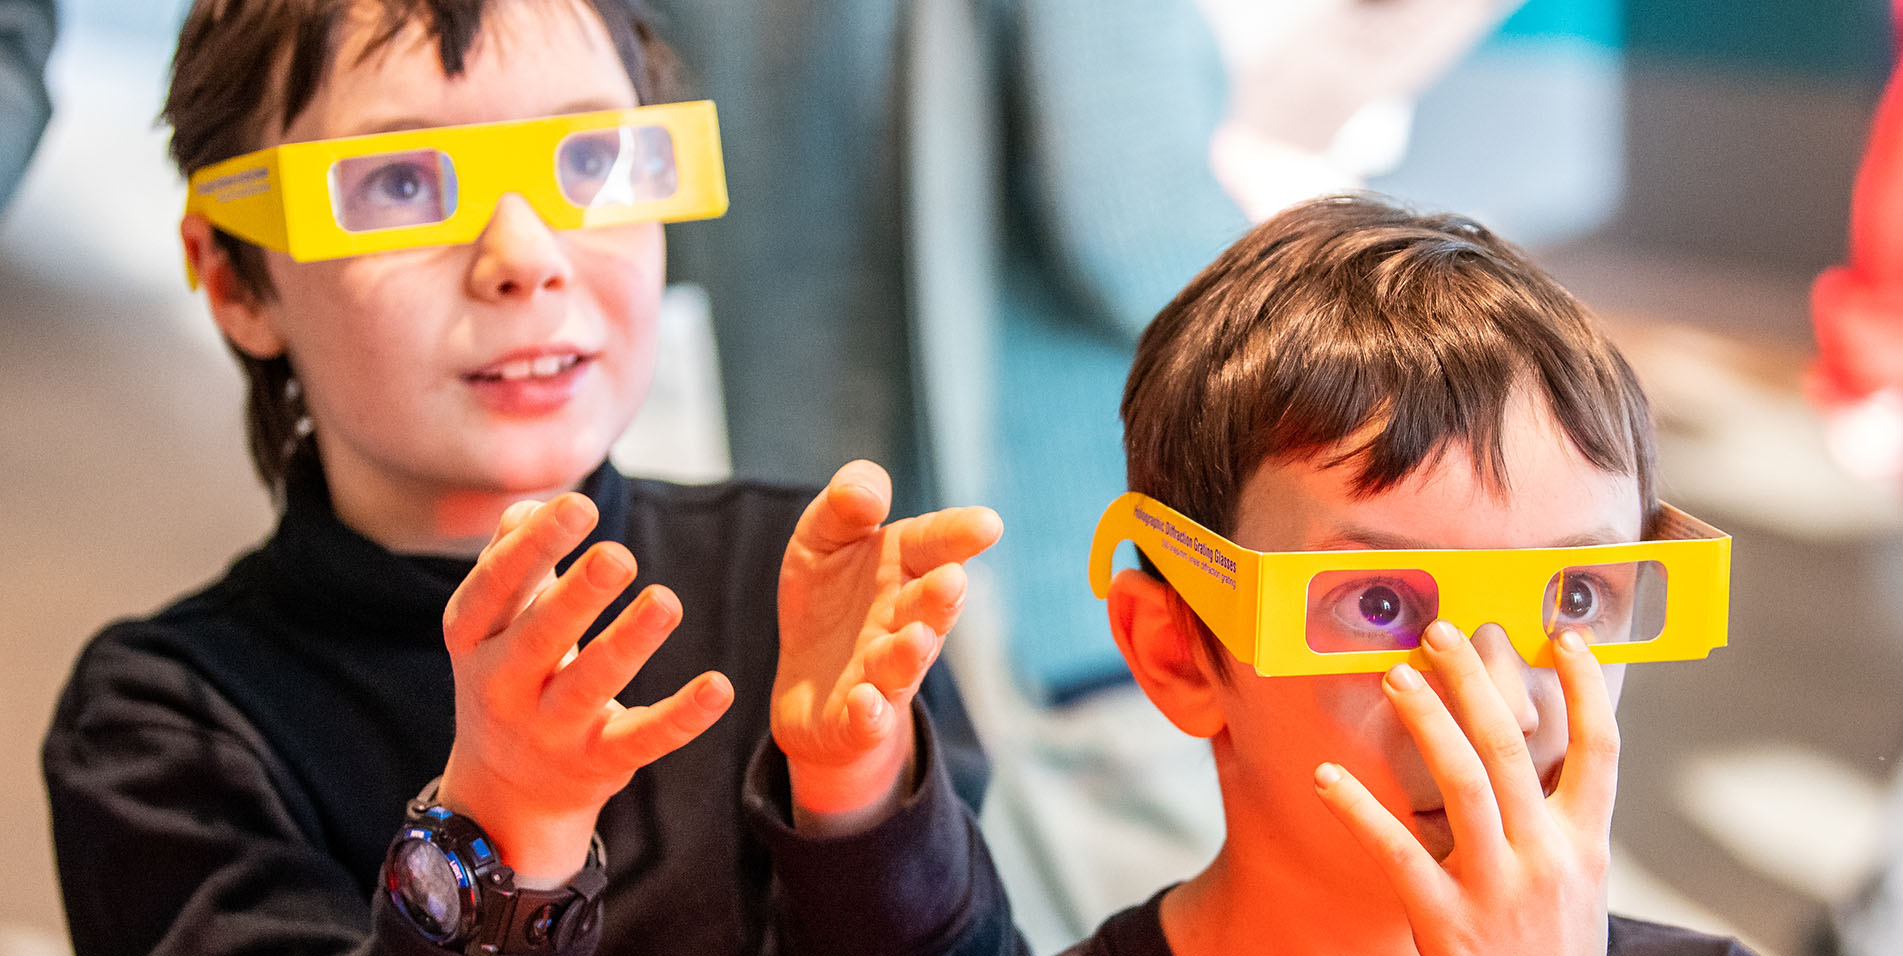 Two boys using special glasses to see infrared light